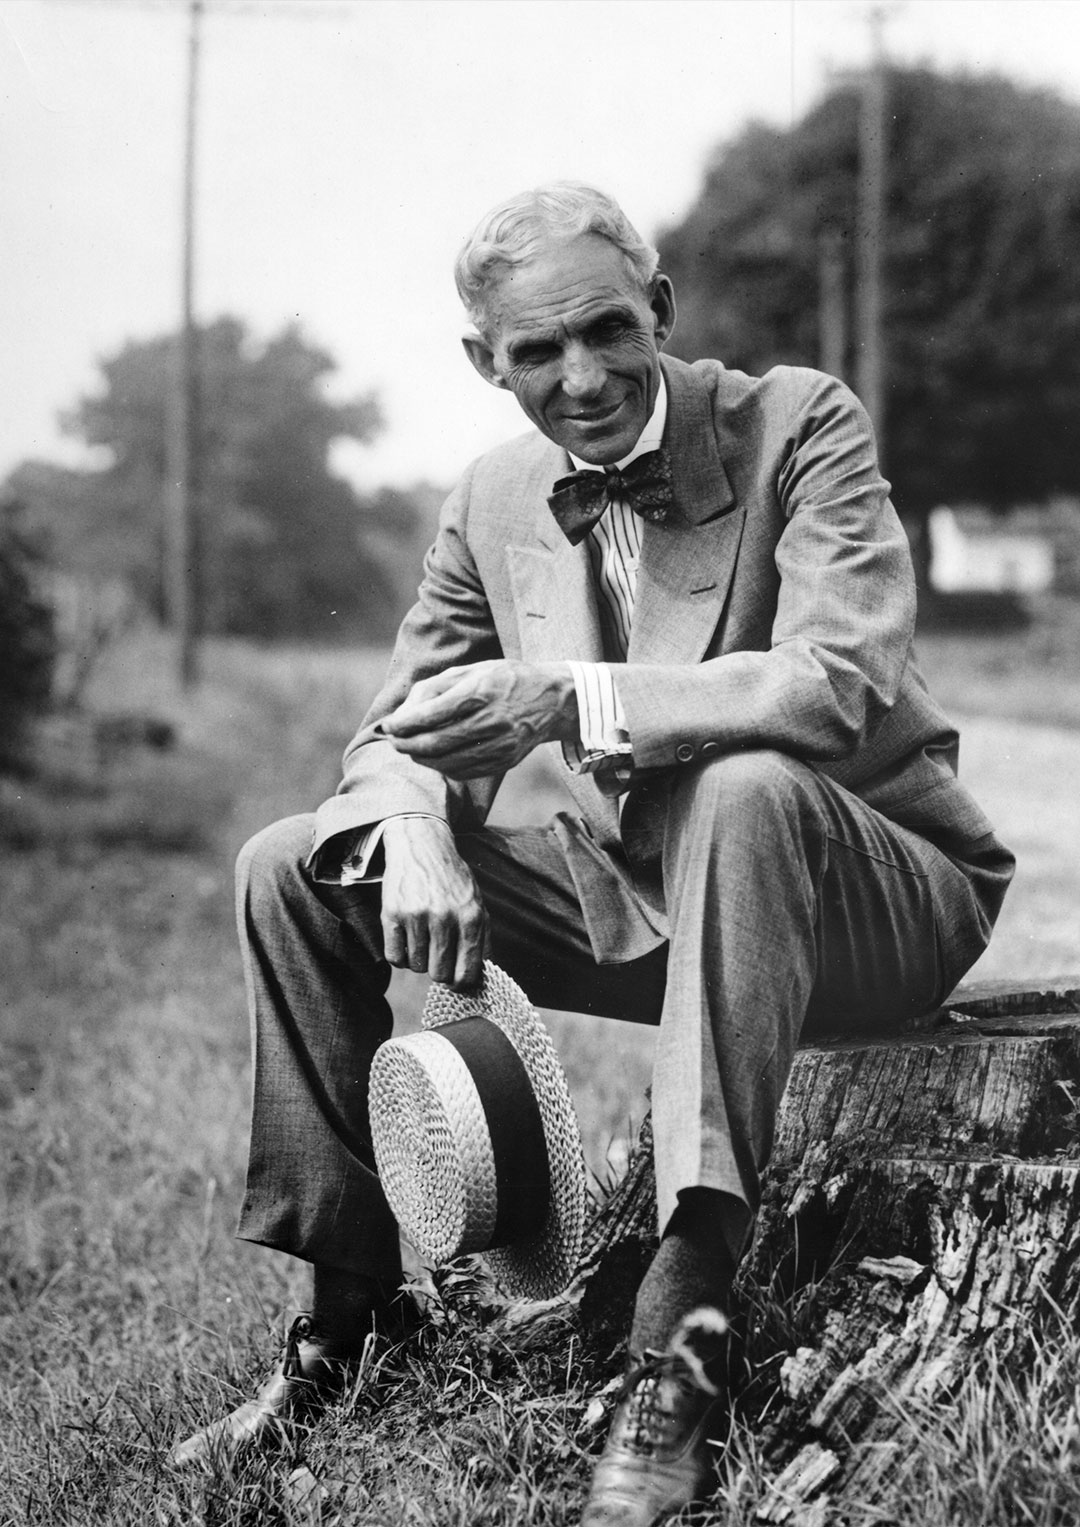 Henry Ford 1863-1947